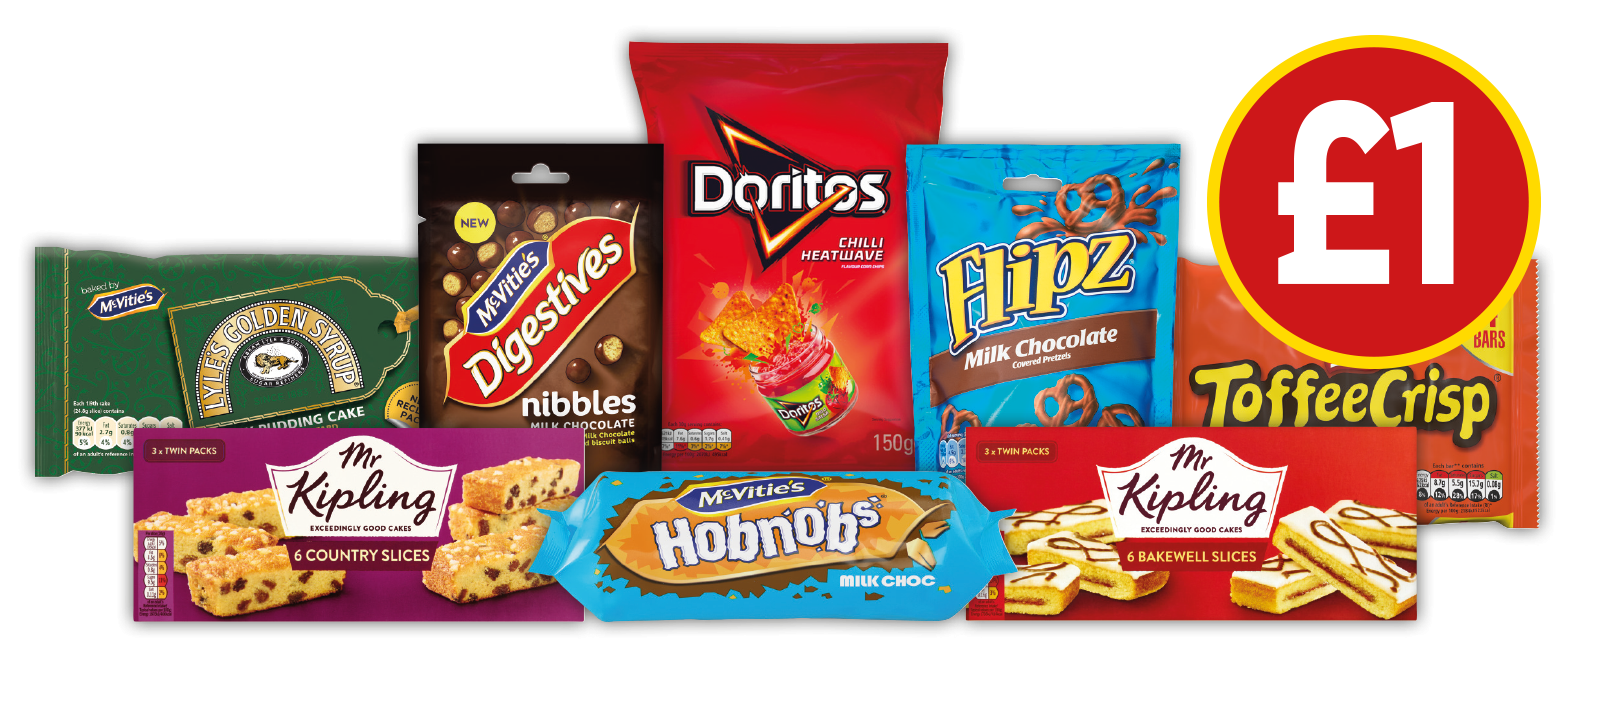 £1 DEALS: Mr Kipling Country Slices, Mr Kipling Bakewell Slices, McVitie's Milk Chocolate Hobnobs, Toffee Crisp Multipack, Doritos Chilli Heatwave Chips and more - Now £1 at Budgens